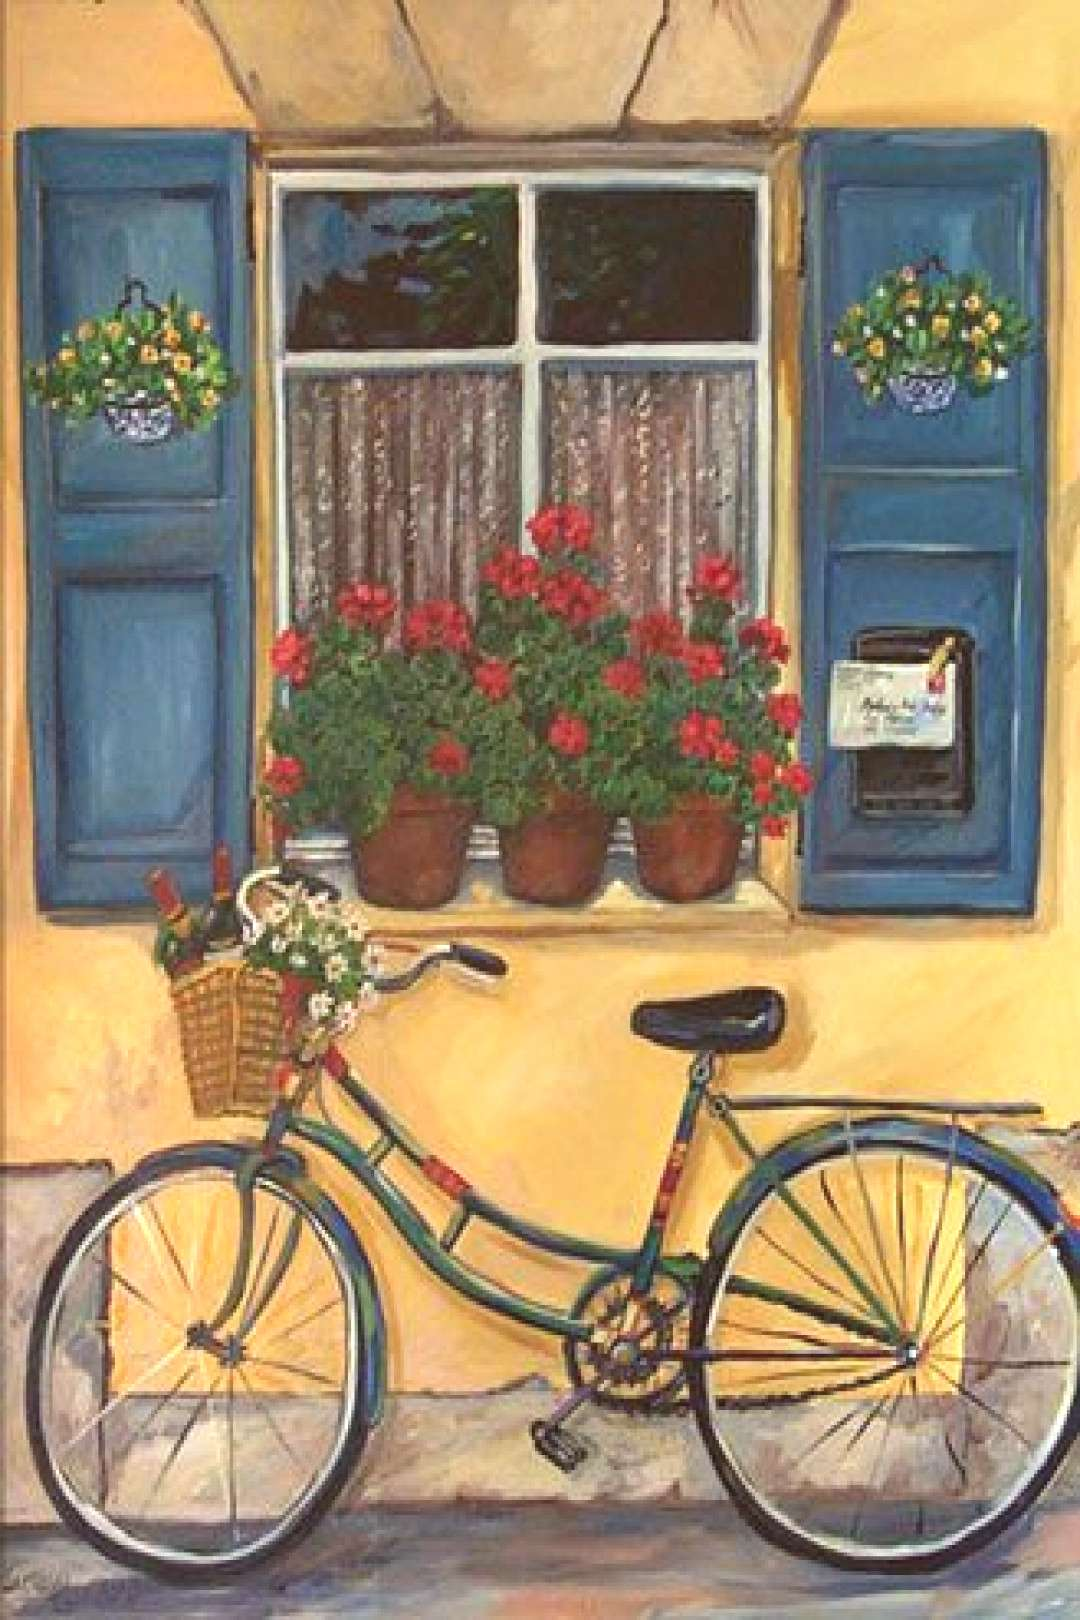 Cottage window with a bicycle. Very quaint and reminiscent of the old country. -  Cottage window wi